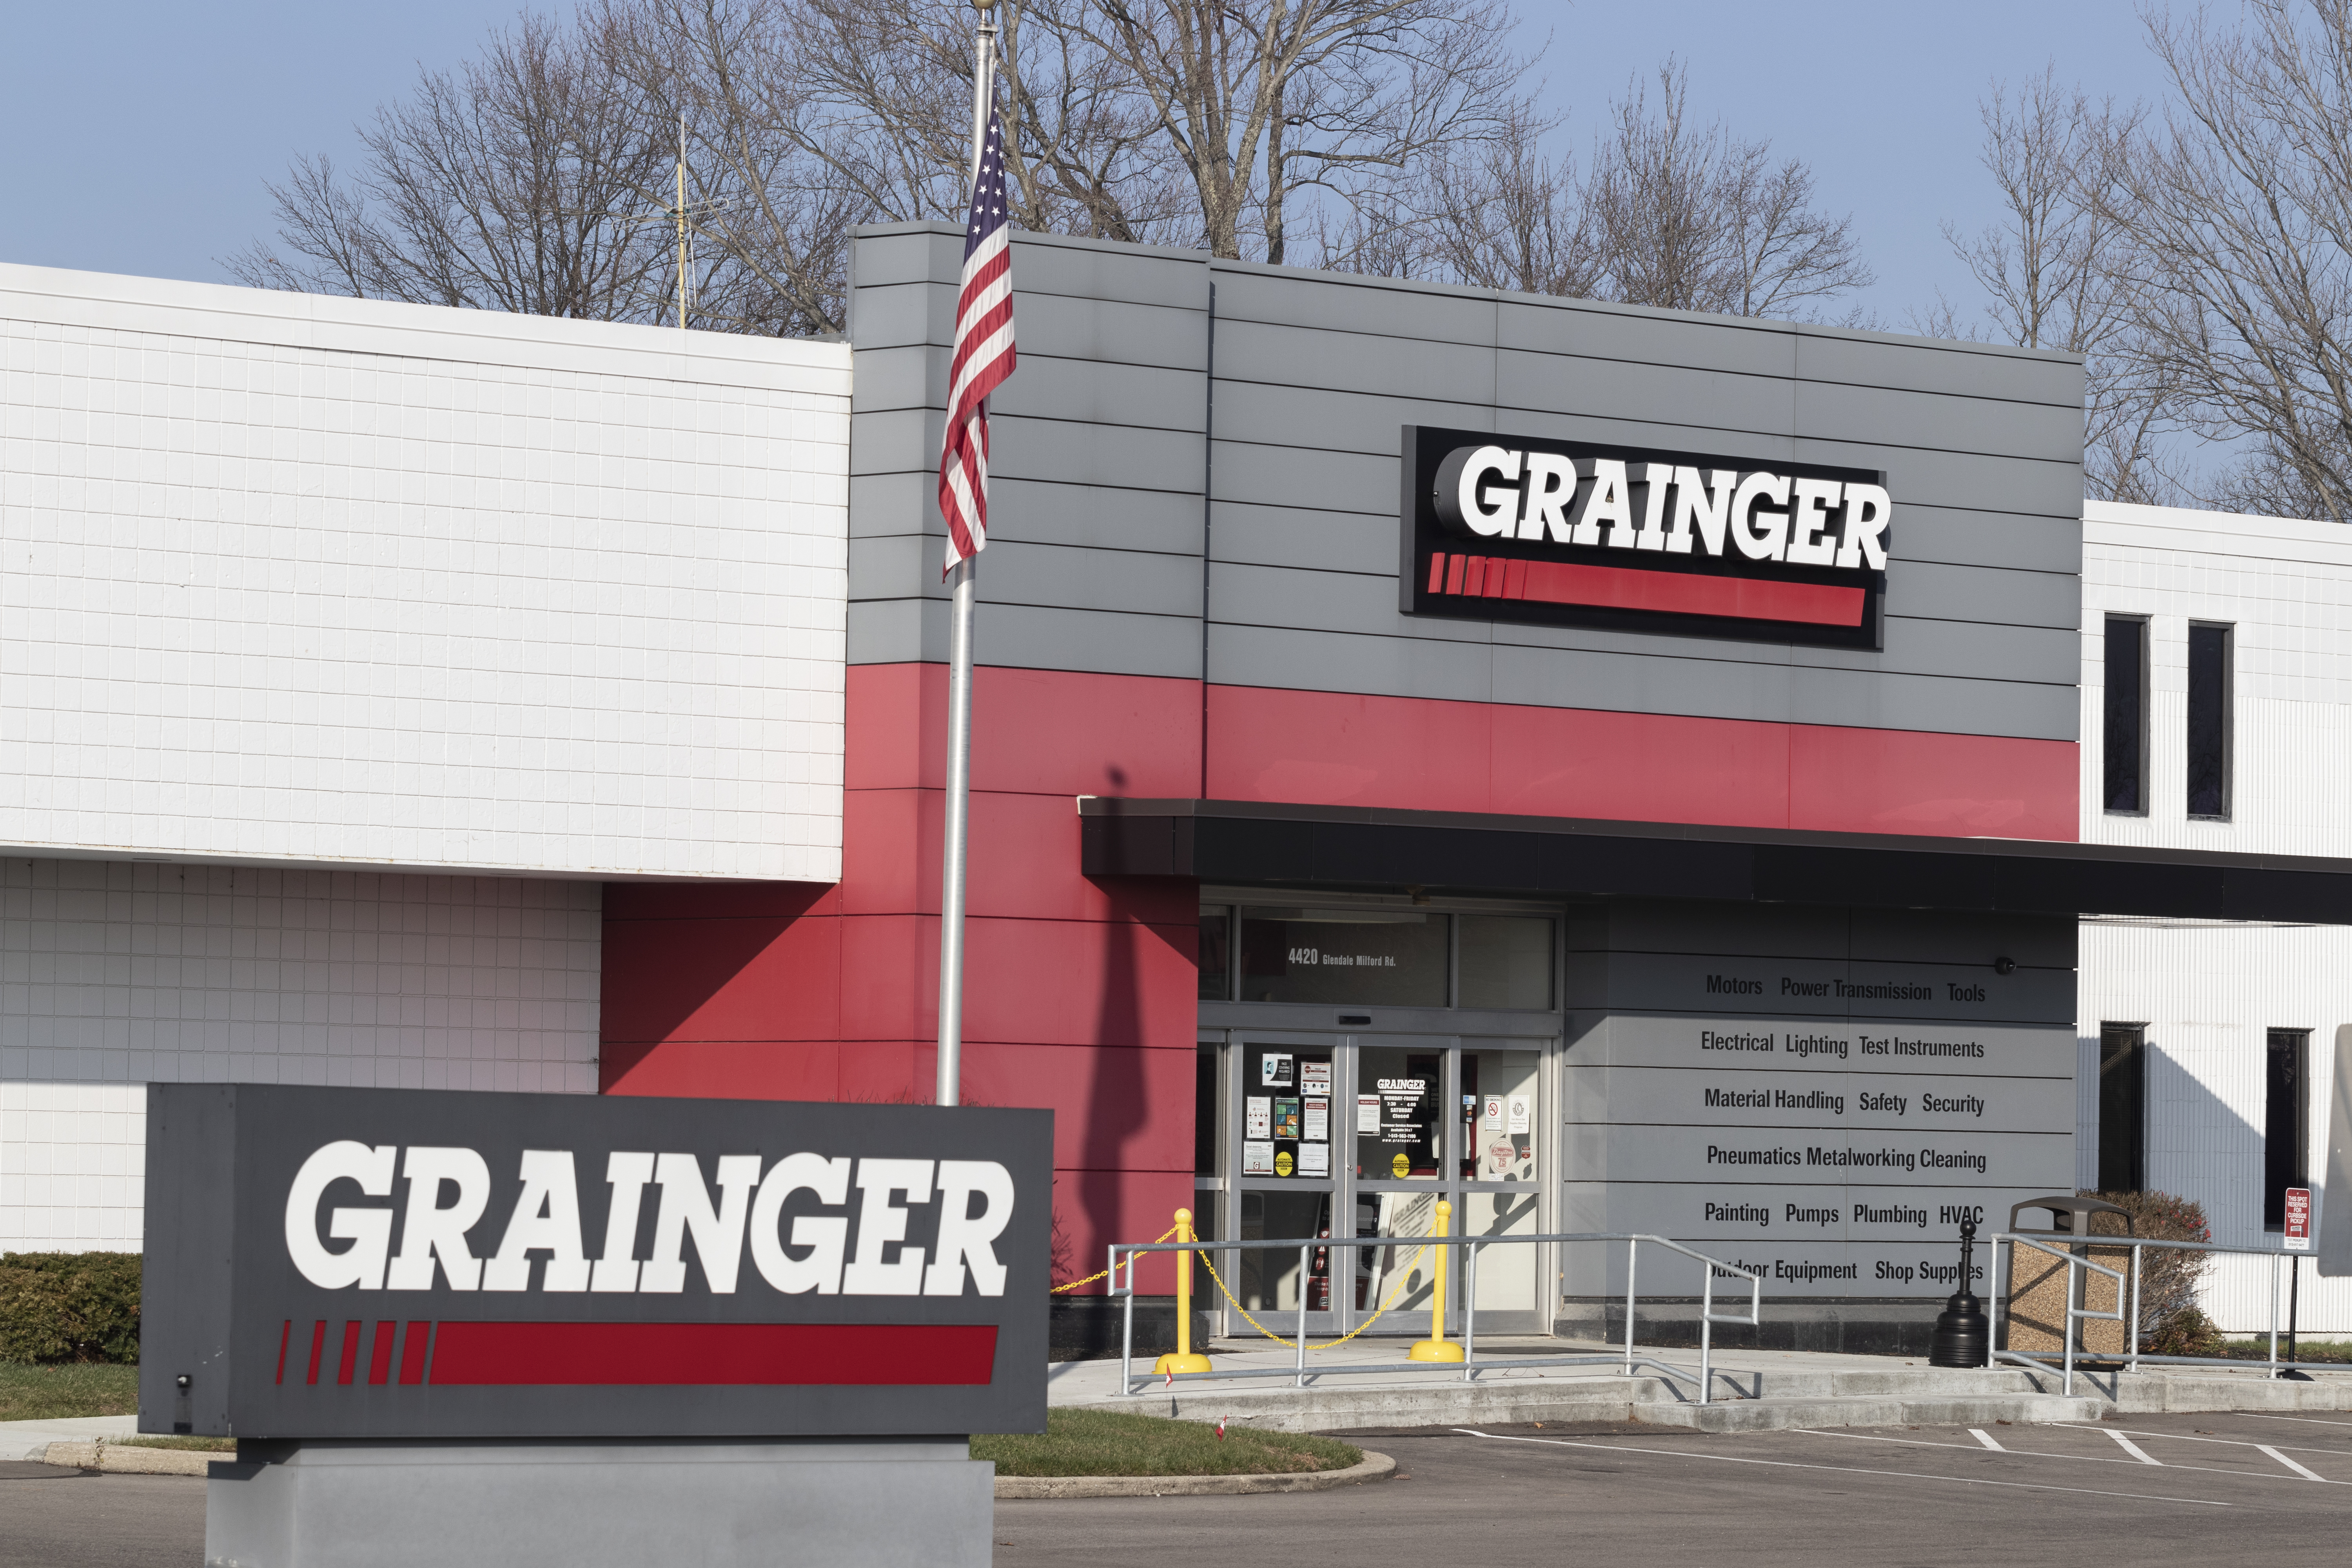 Blue Ash - Circa November 2020: Grainger industrial supply warehouse. WW Grainger is a hardware and safety supply manufacturer.